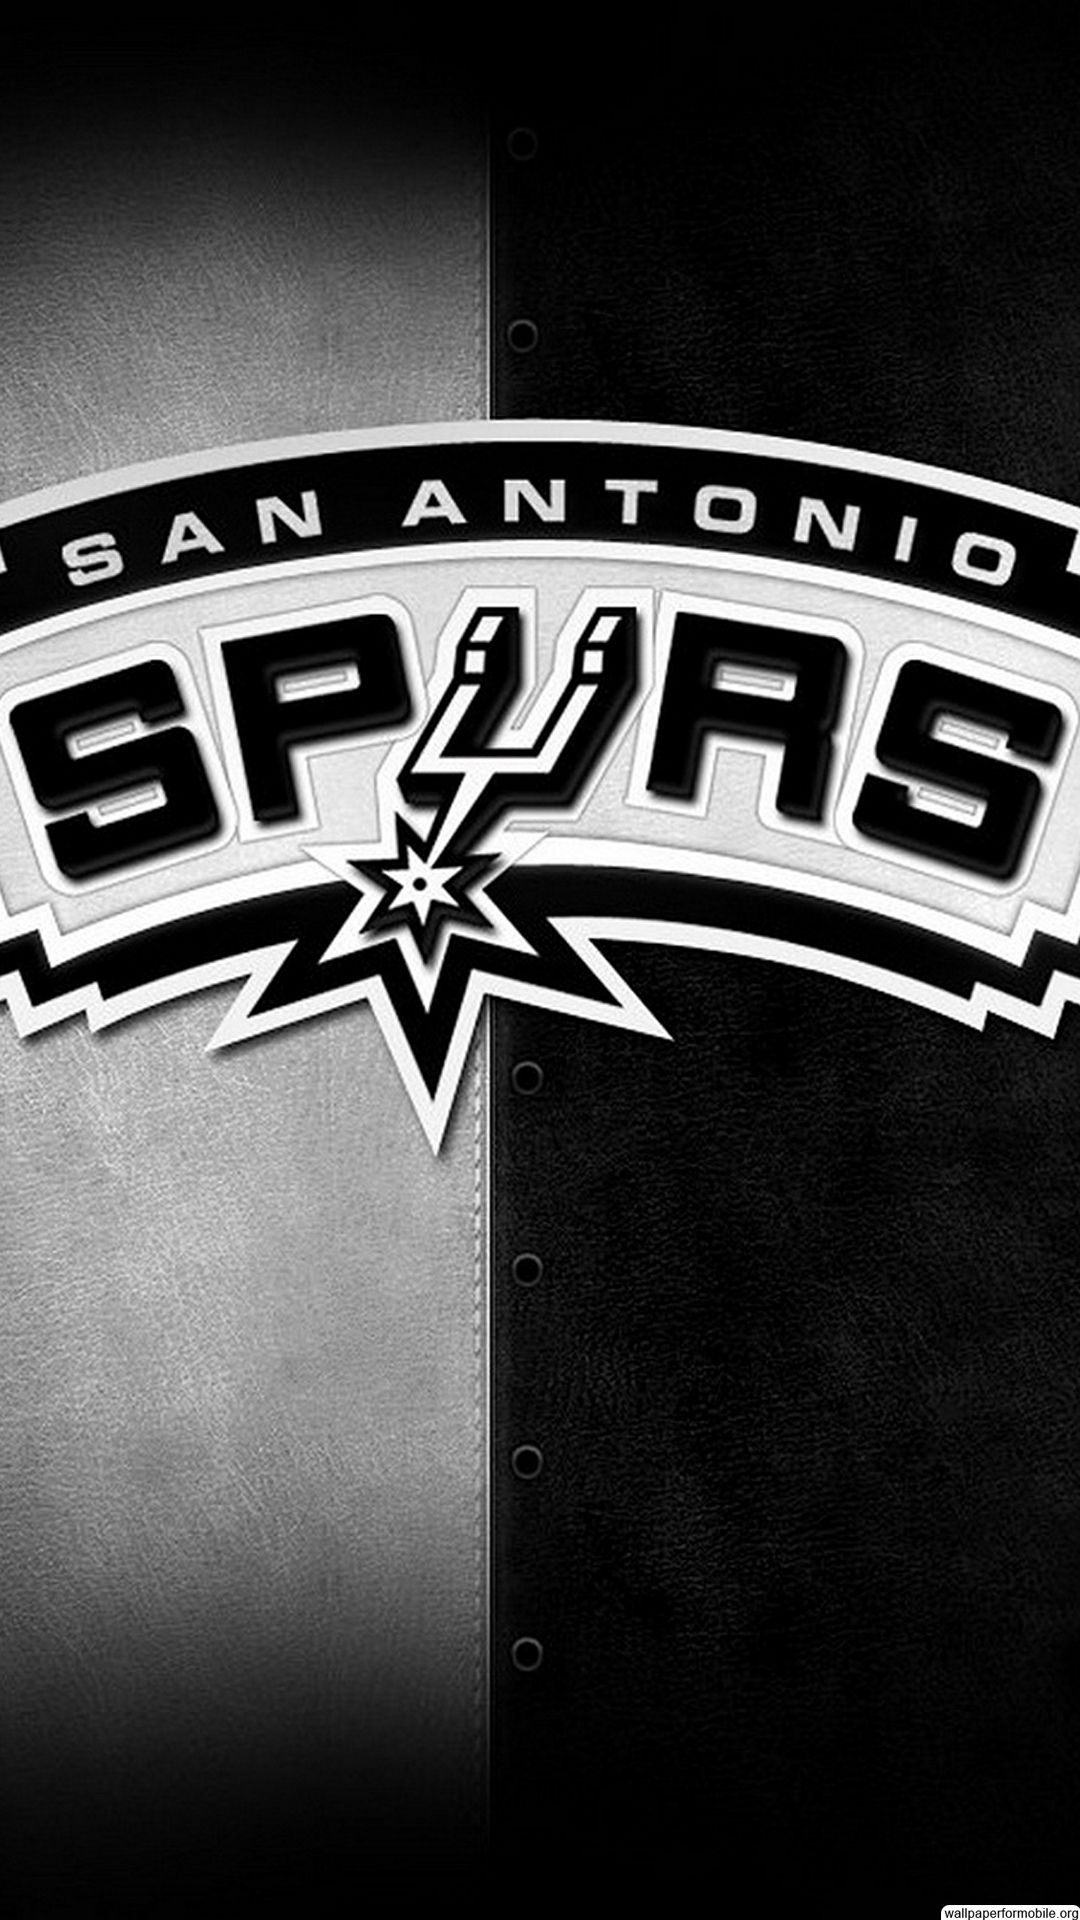 Free Download San Antonio Spurs Wallpapers For Iphone 7 Iphone 7 Plus 1080x1920 For Your Desktop Mobile Tablet Explore 75 Spurs Phone Wallpaper Nba Wallpaper Tottenham Hotspur Wallpaper